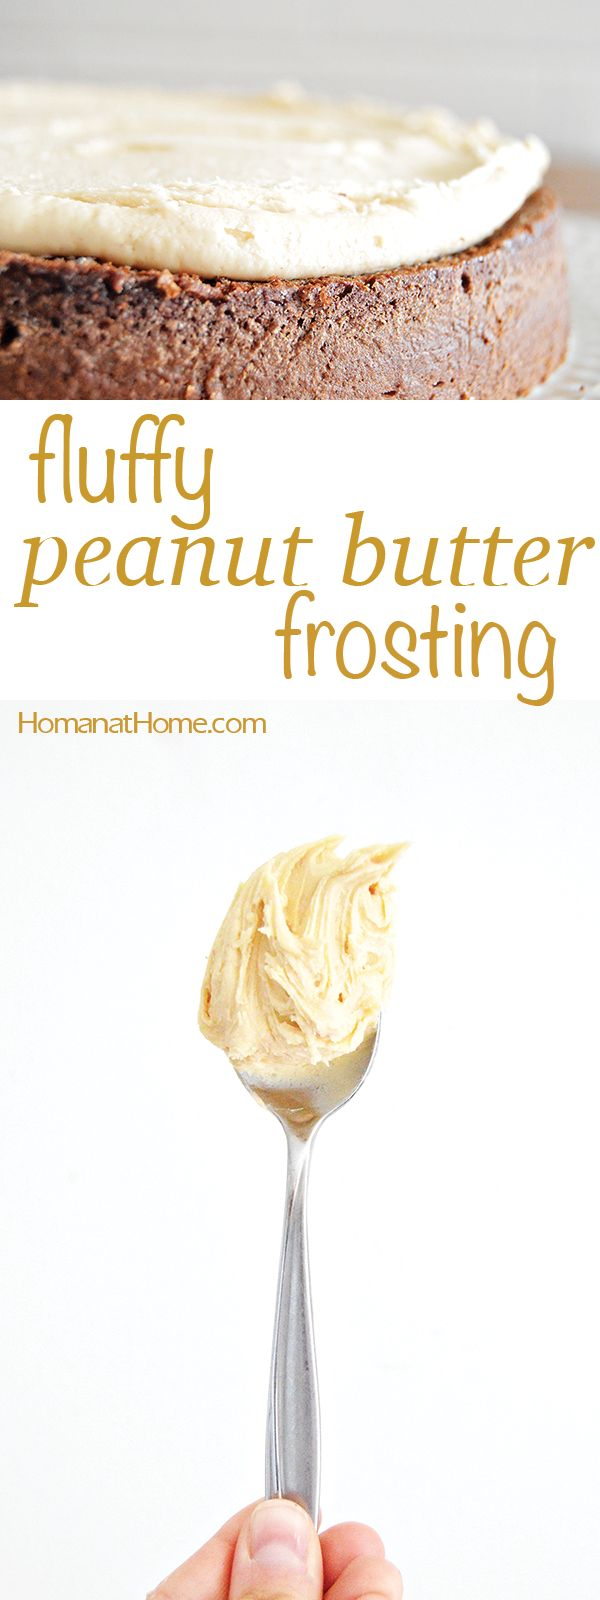 Fluffy Peanut Butter Frosting| Homan at Home